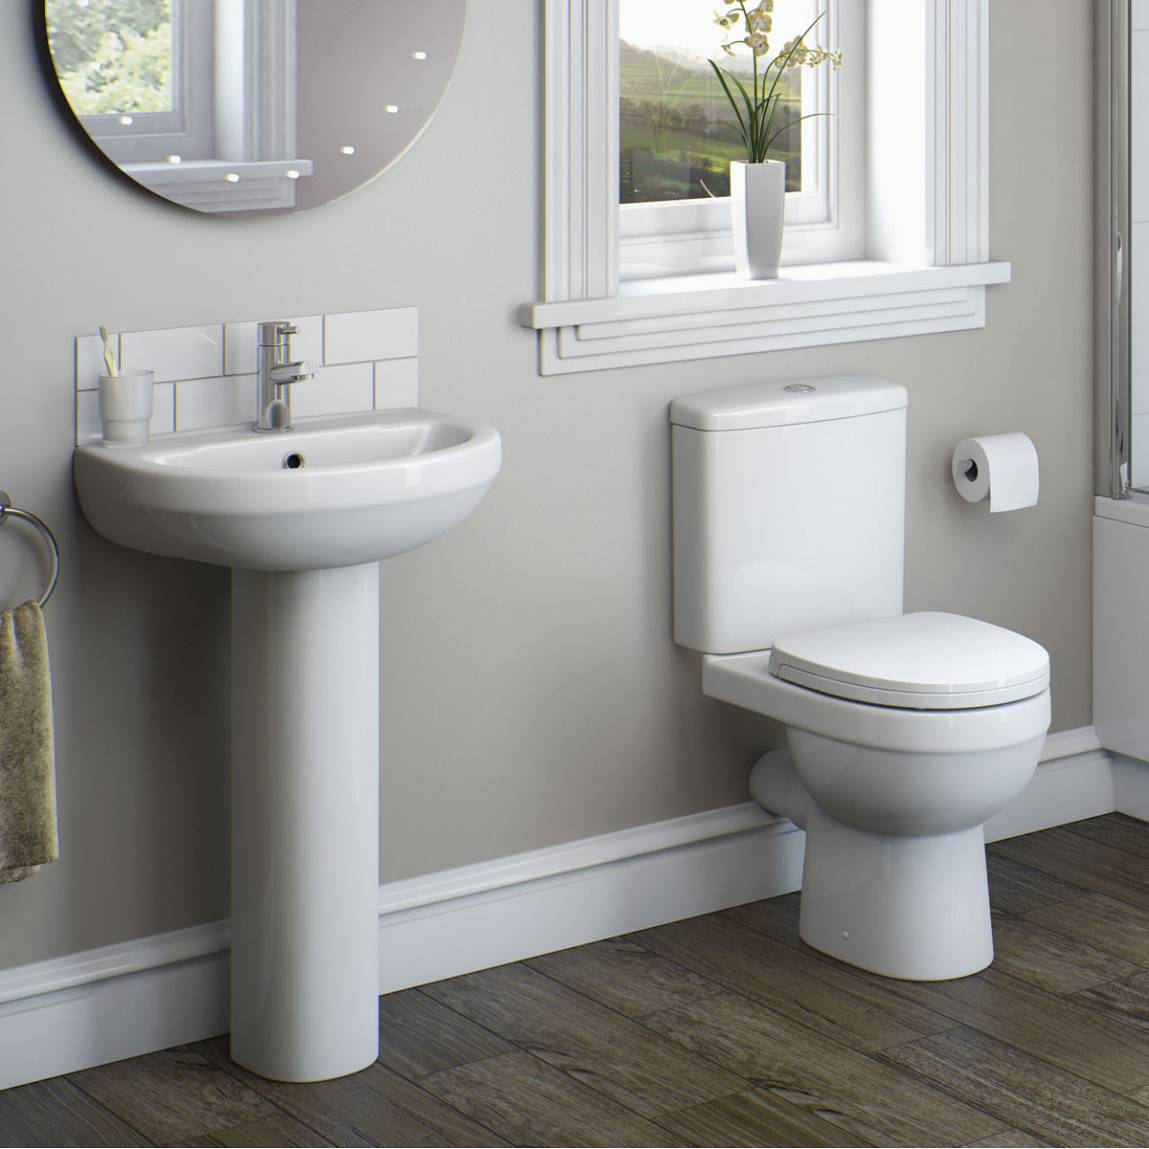 Bathroom products for small spaces Small bathroom decorating ideas uk